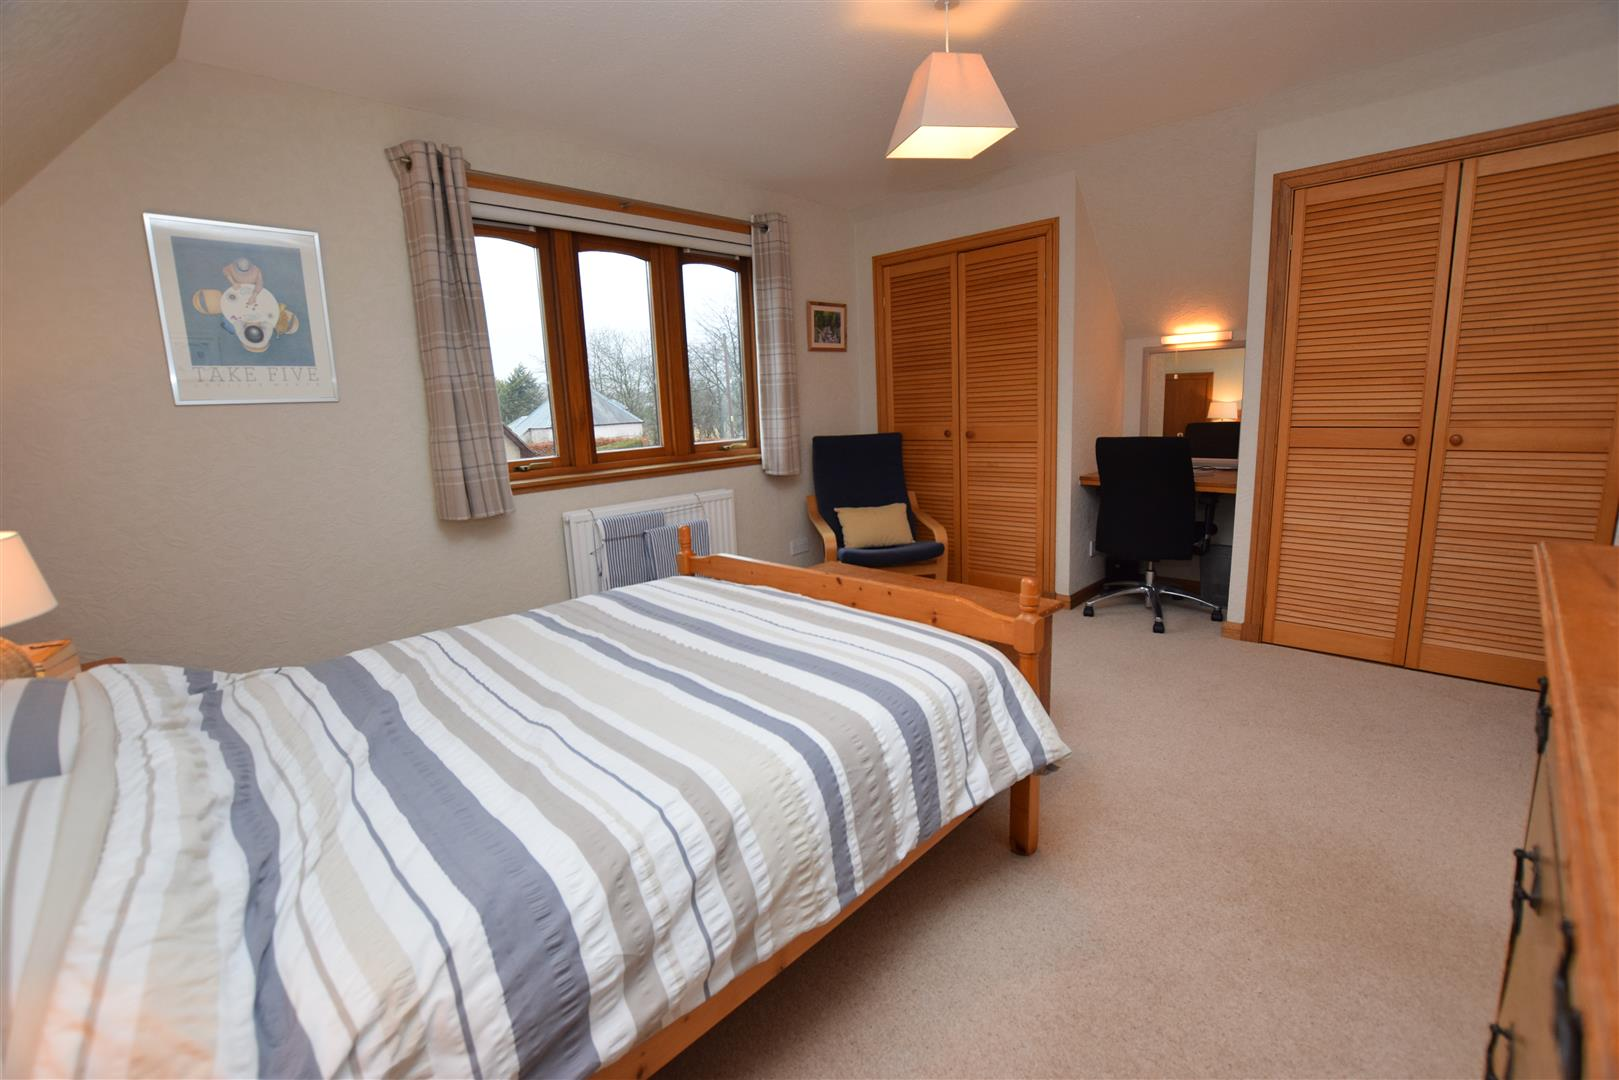 2 The Beeches, Woodside, Blairgowrie, Perthshire, PH13 9NQ, UK